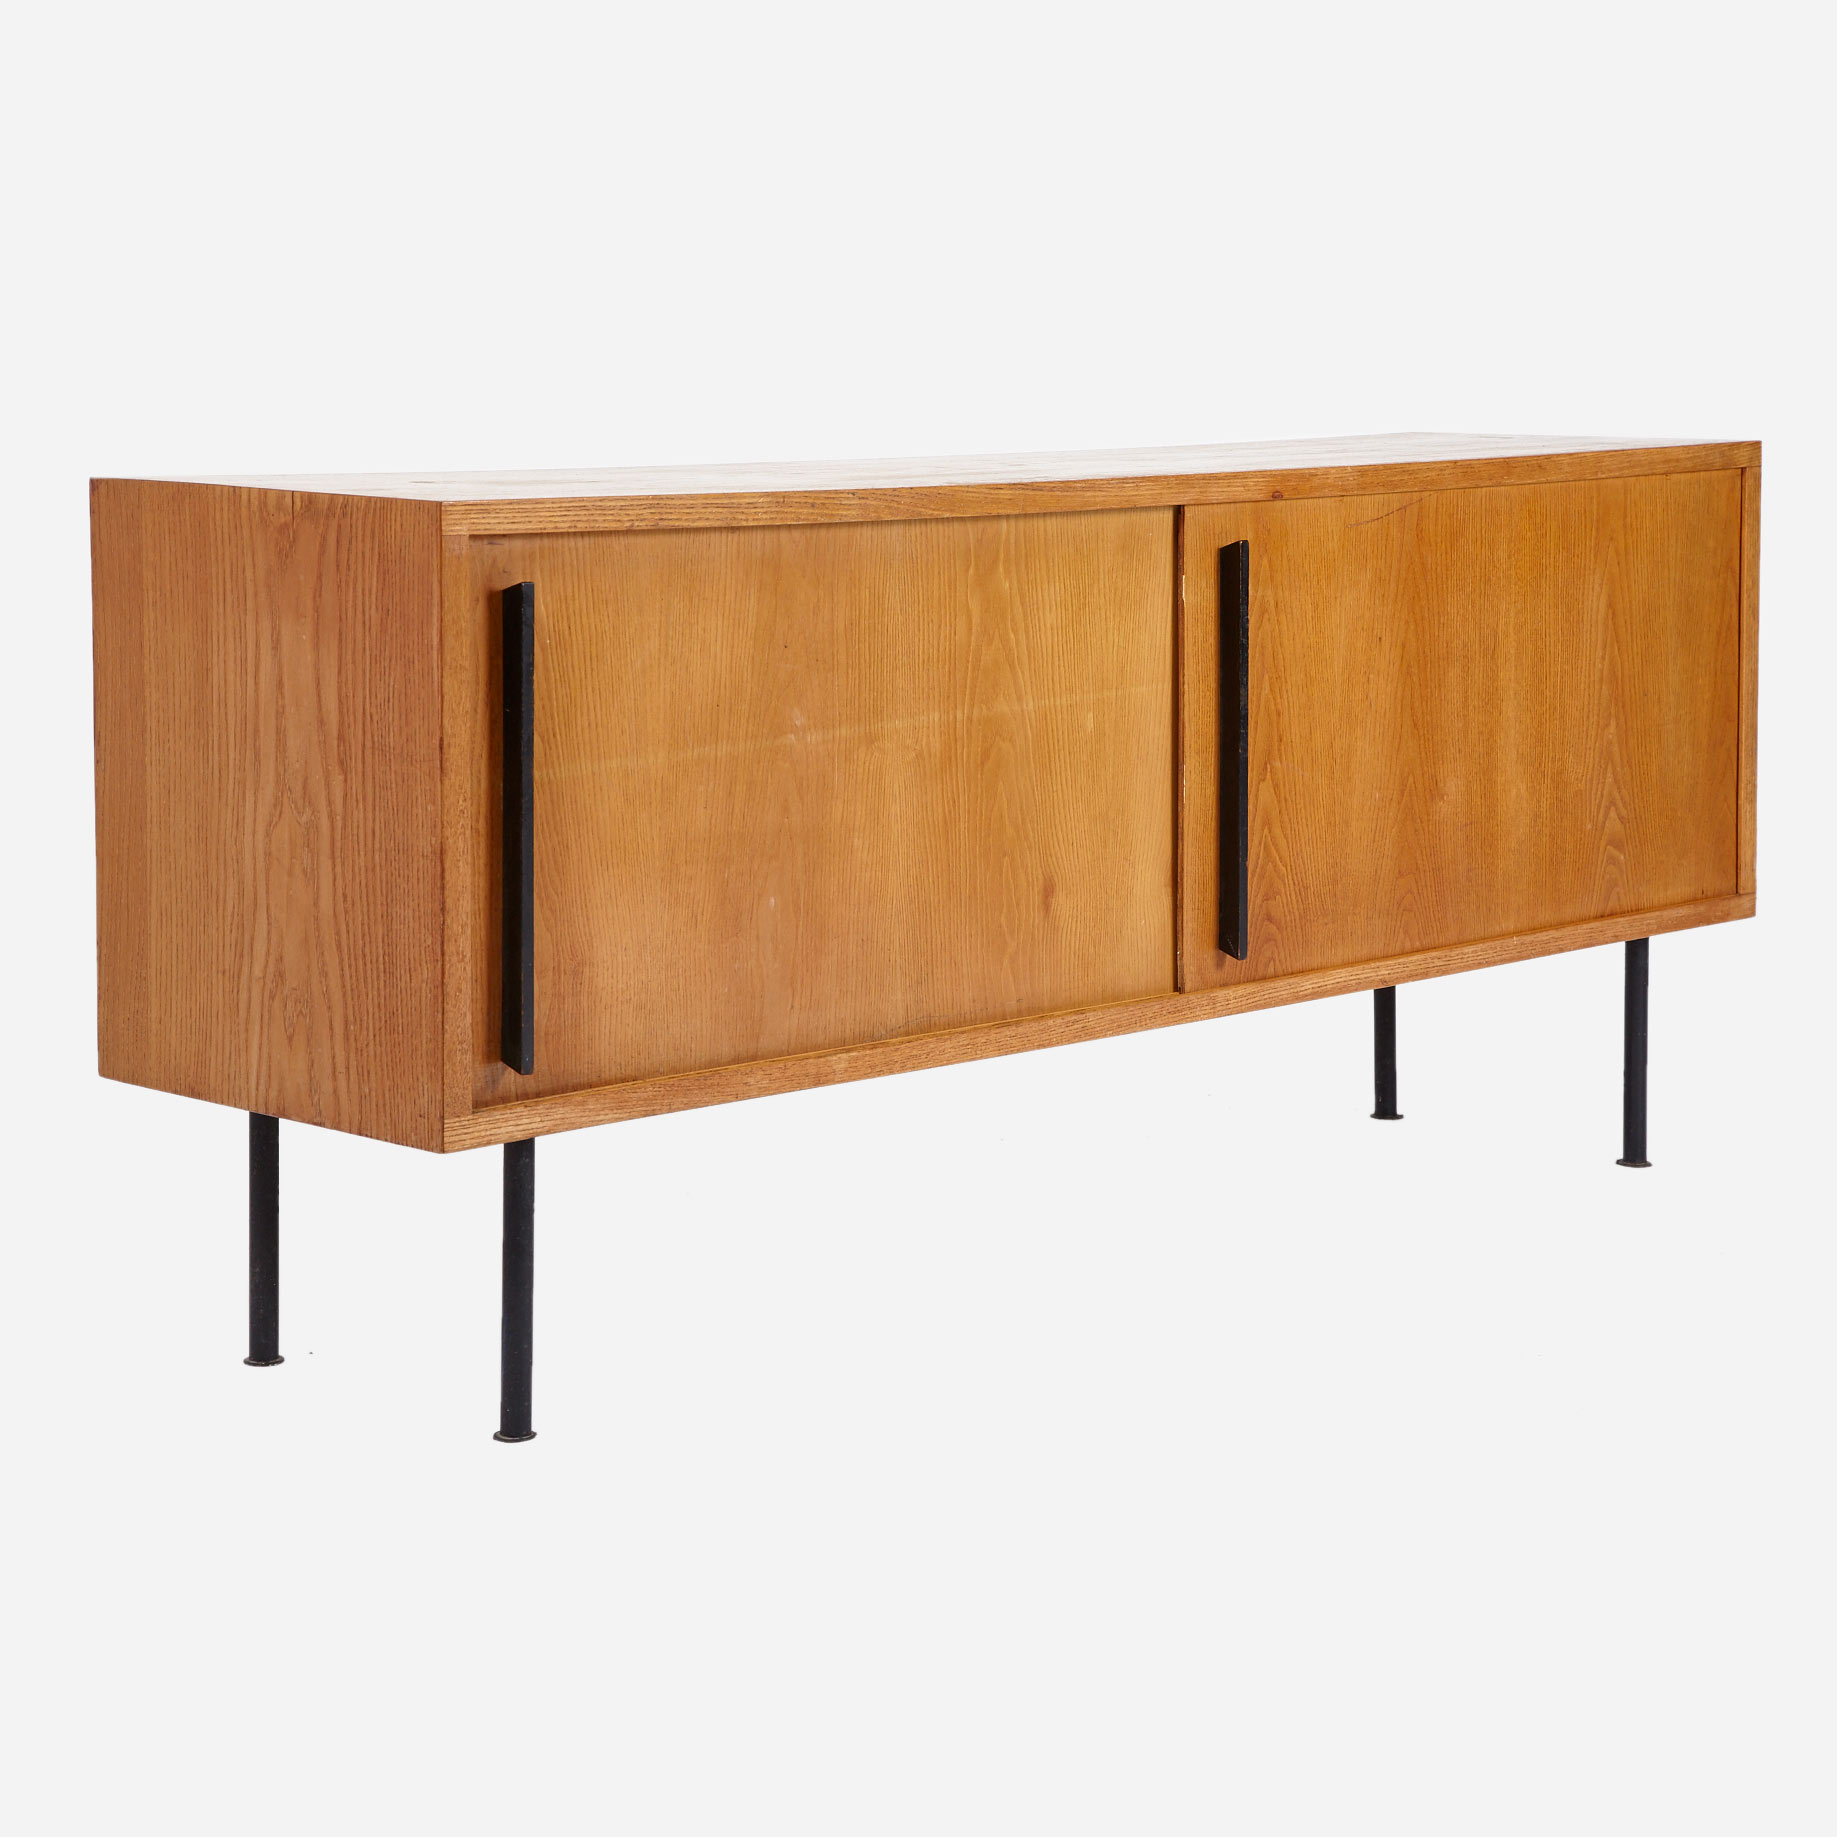 60er jahre sideboard m bel z rich vintagem bel. Black Bedroom Furniture Sets. Home Design Ideas